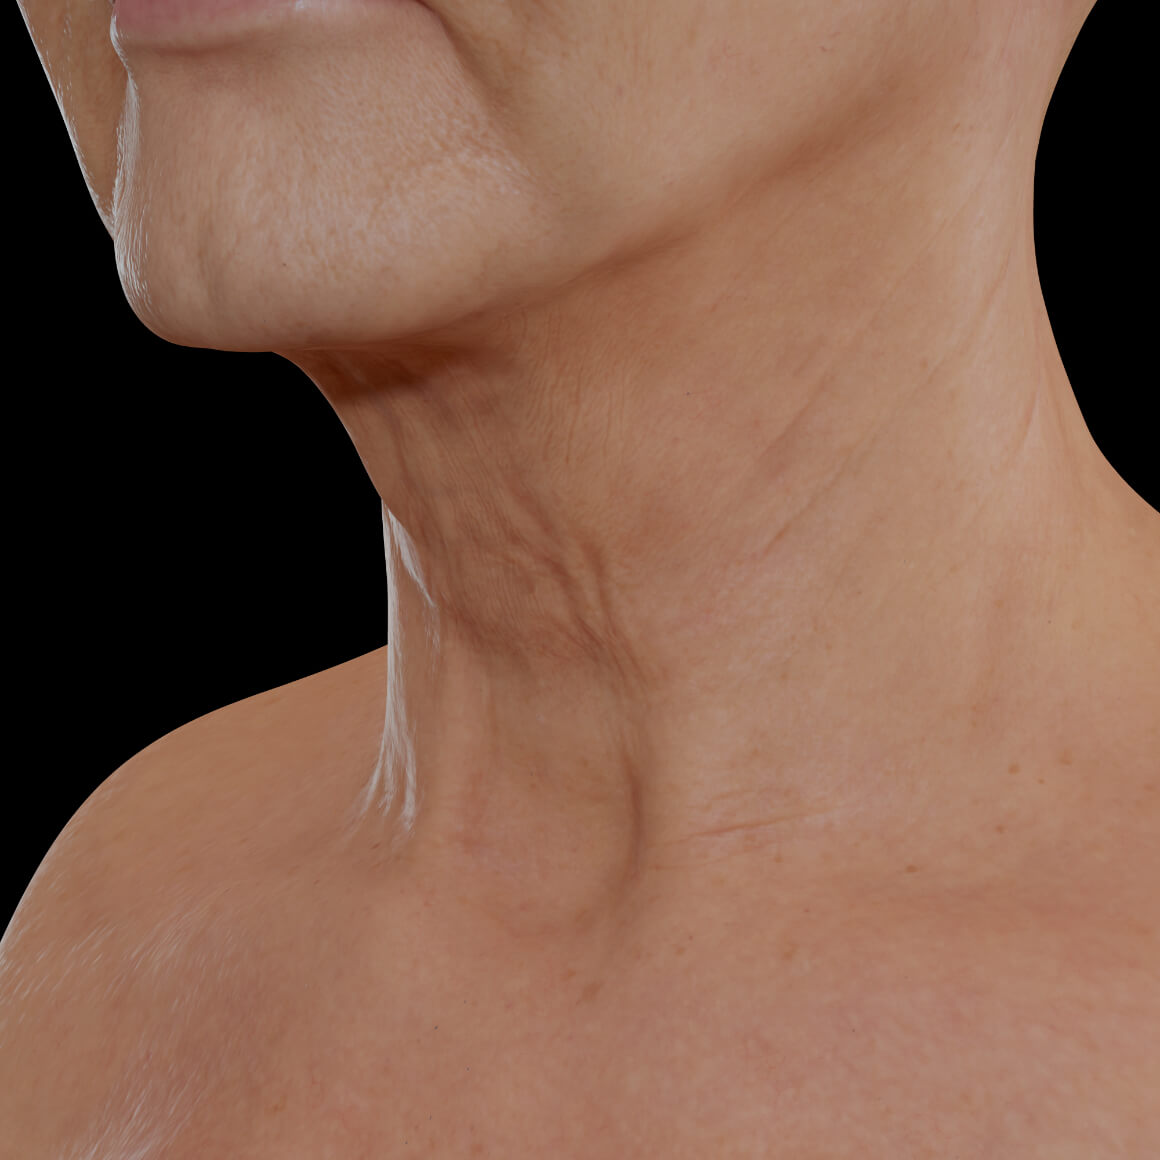 Female patient from Clinique Chloé positioned at an angle after Sculptra injections for neck skin tightening